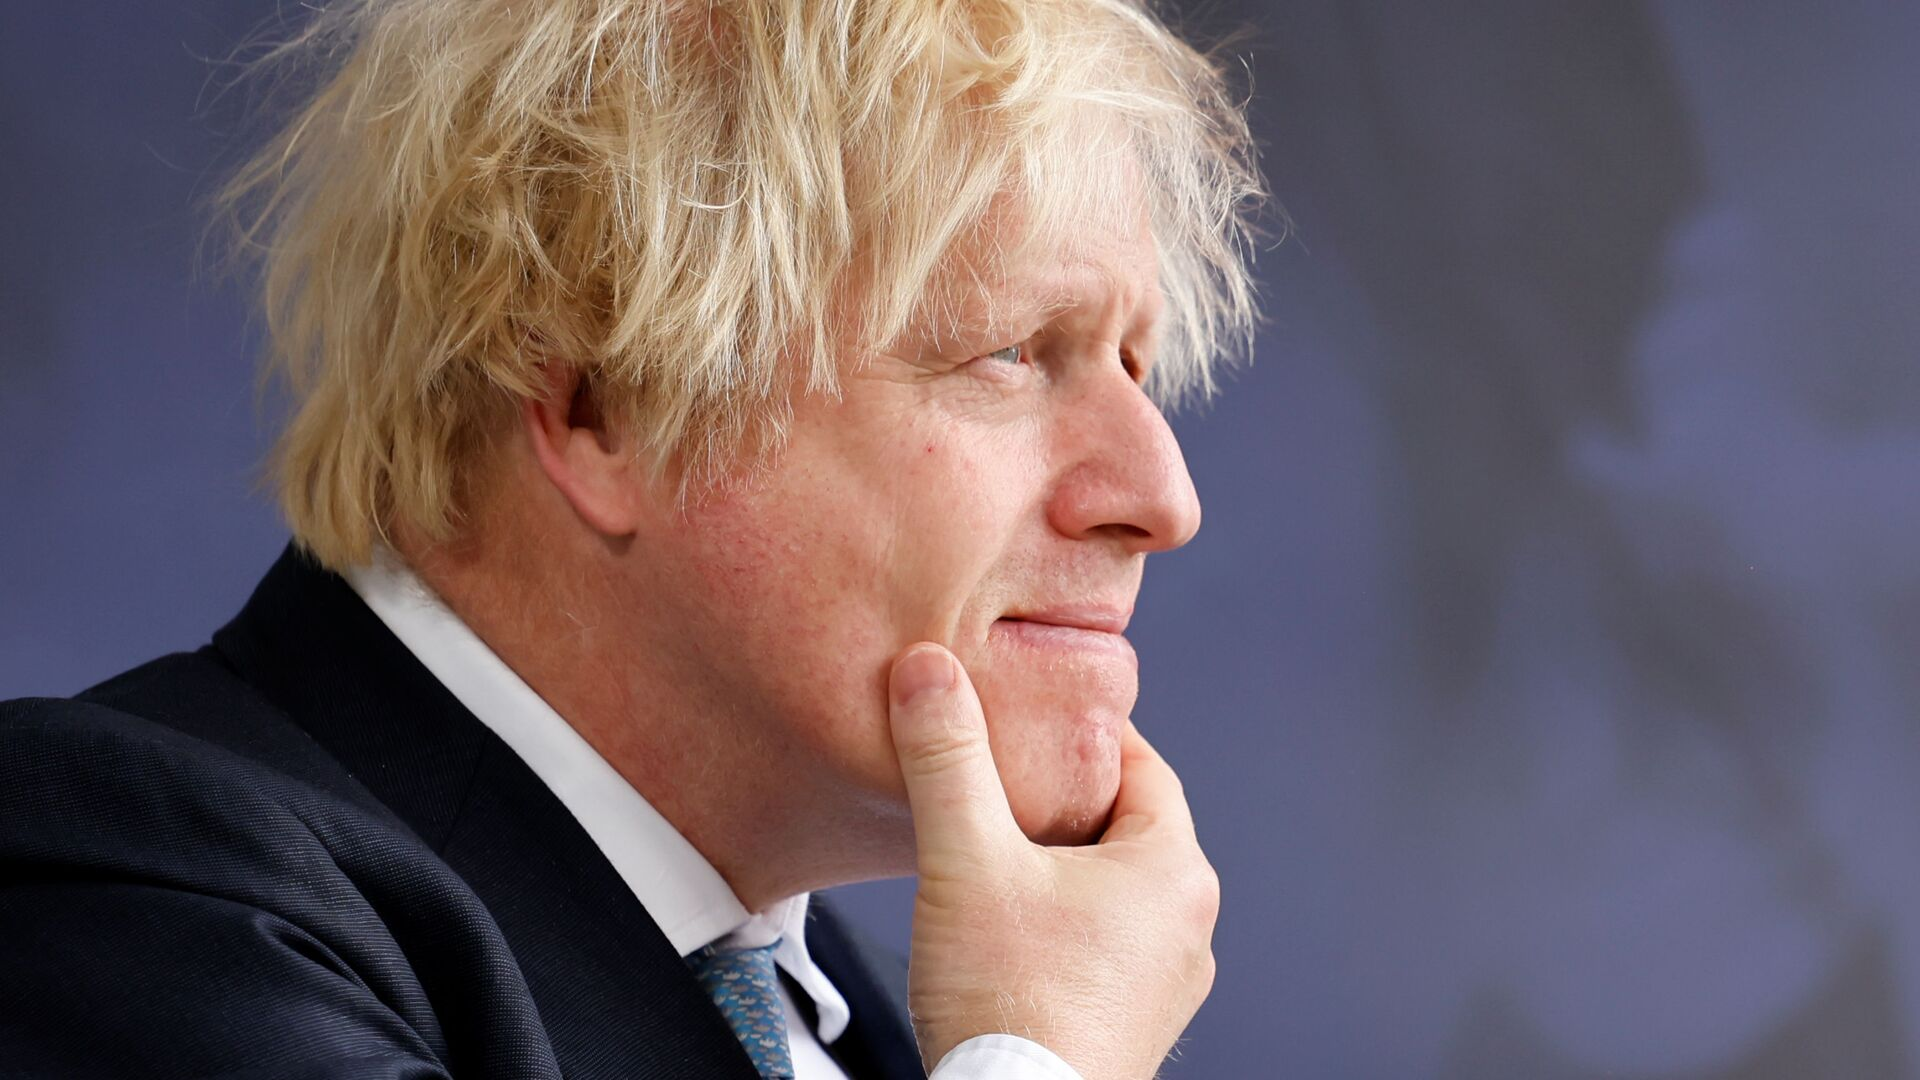 Britain's Prime Minister Boris Johnson arrives on the second day of the Global Education Summit in London, Britain July 29, 2021 - Sputnik International, 1920, 13.10.2021